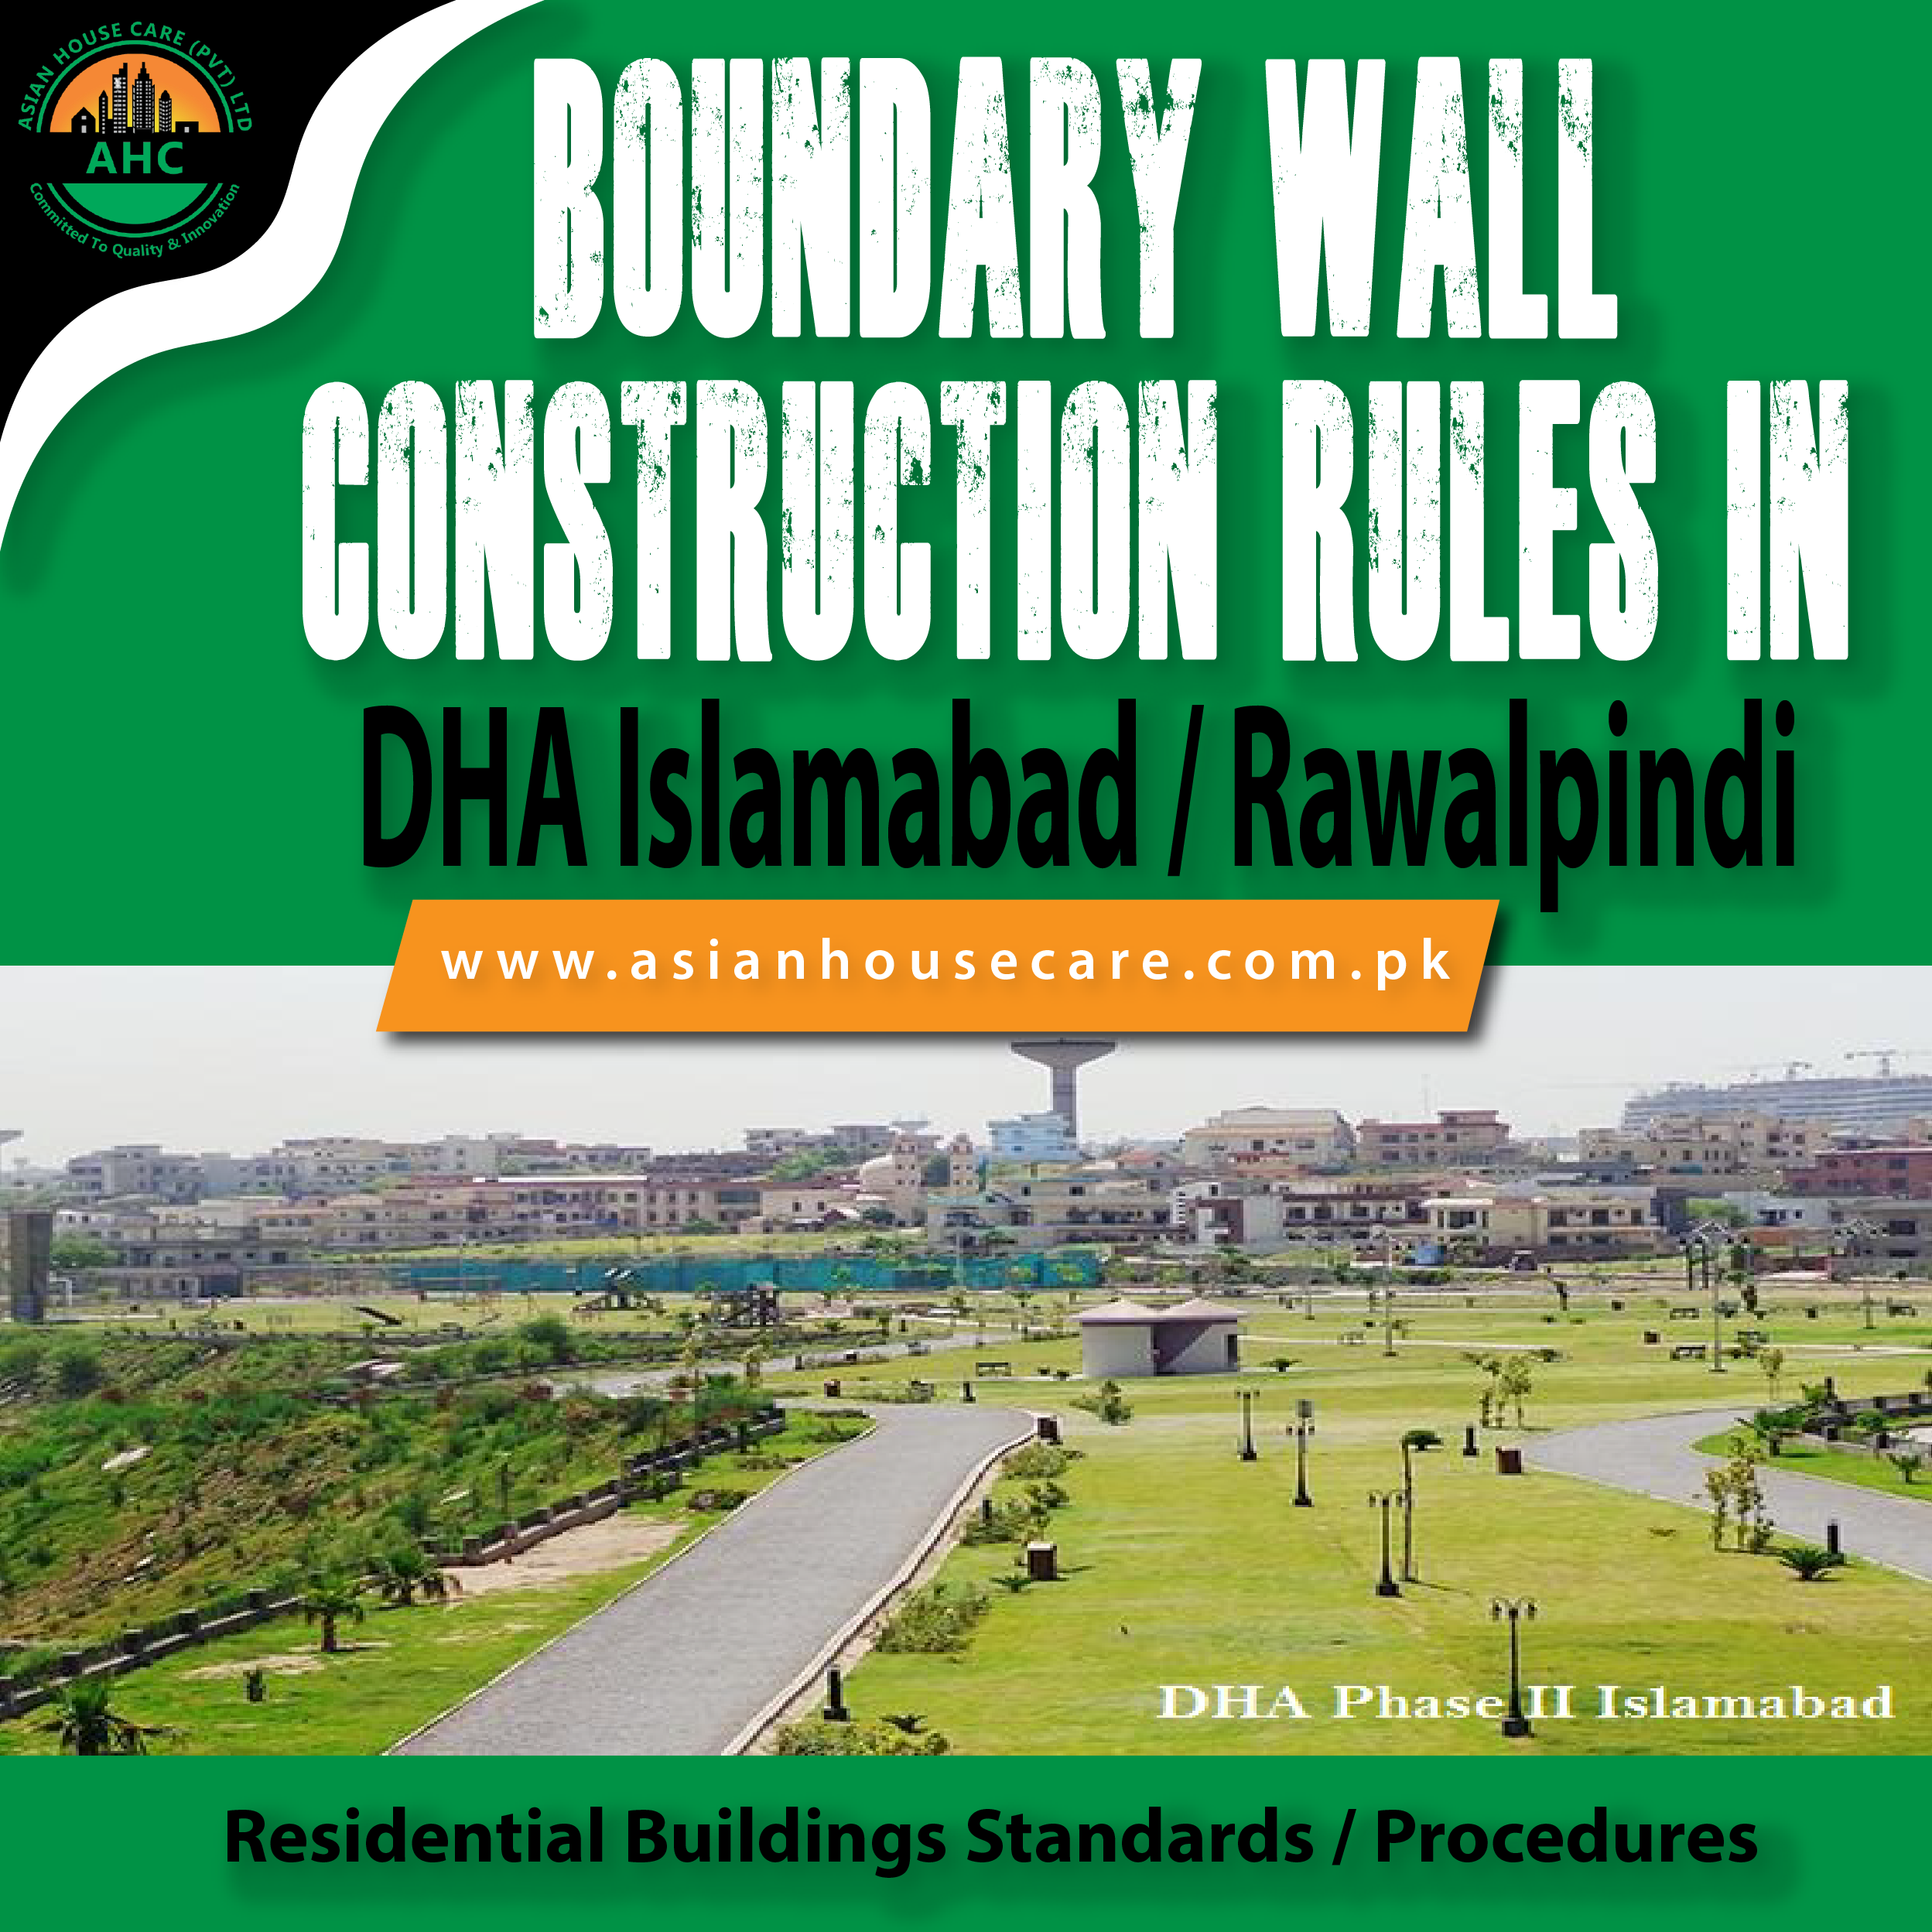 Boundary Wall Construction Rules in DHA